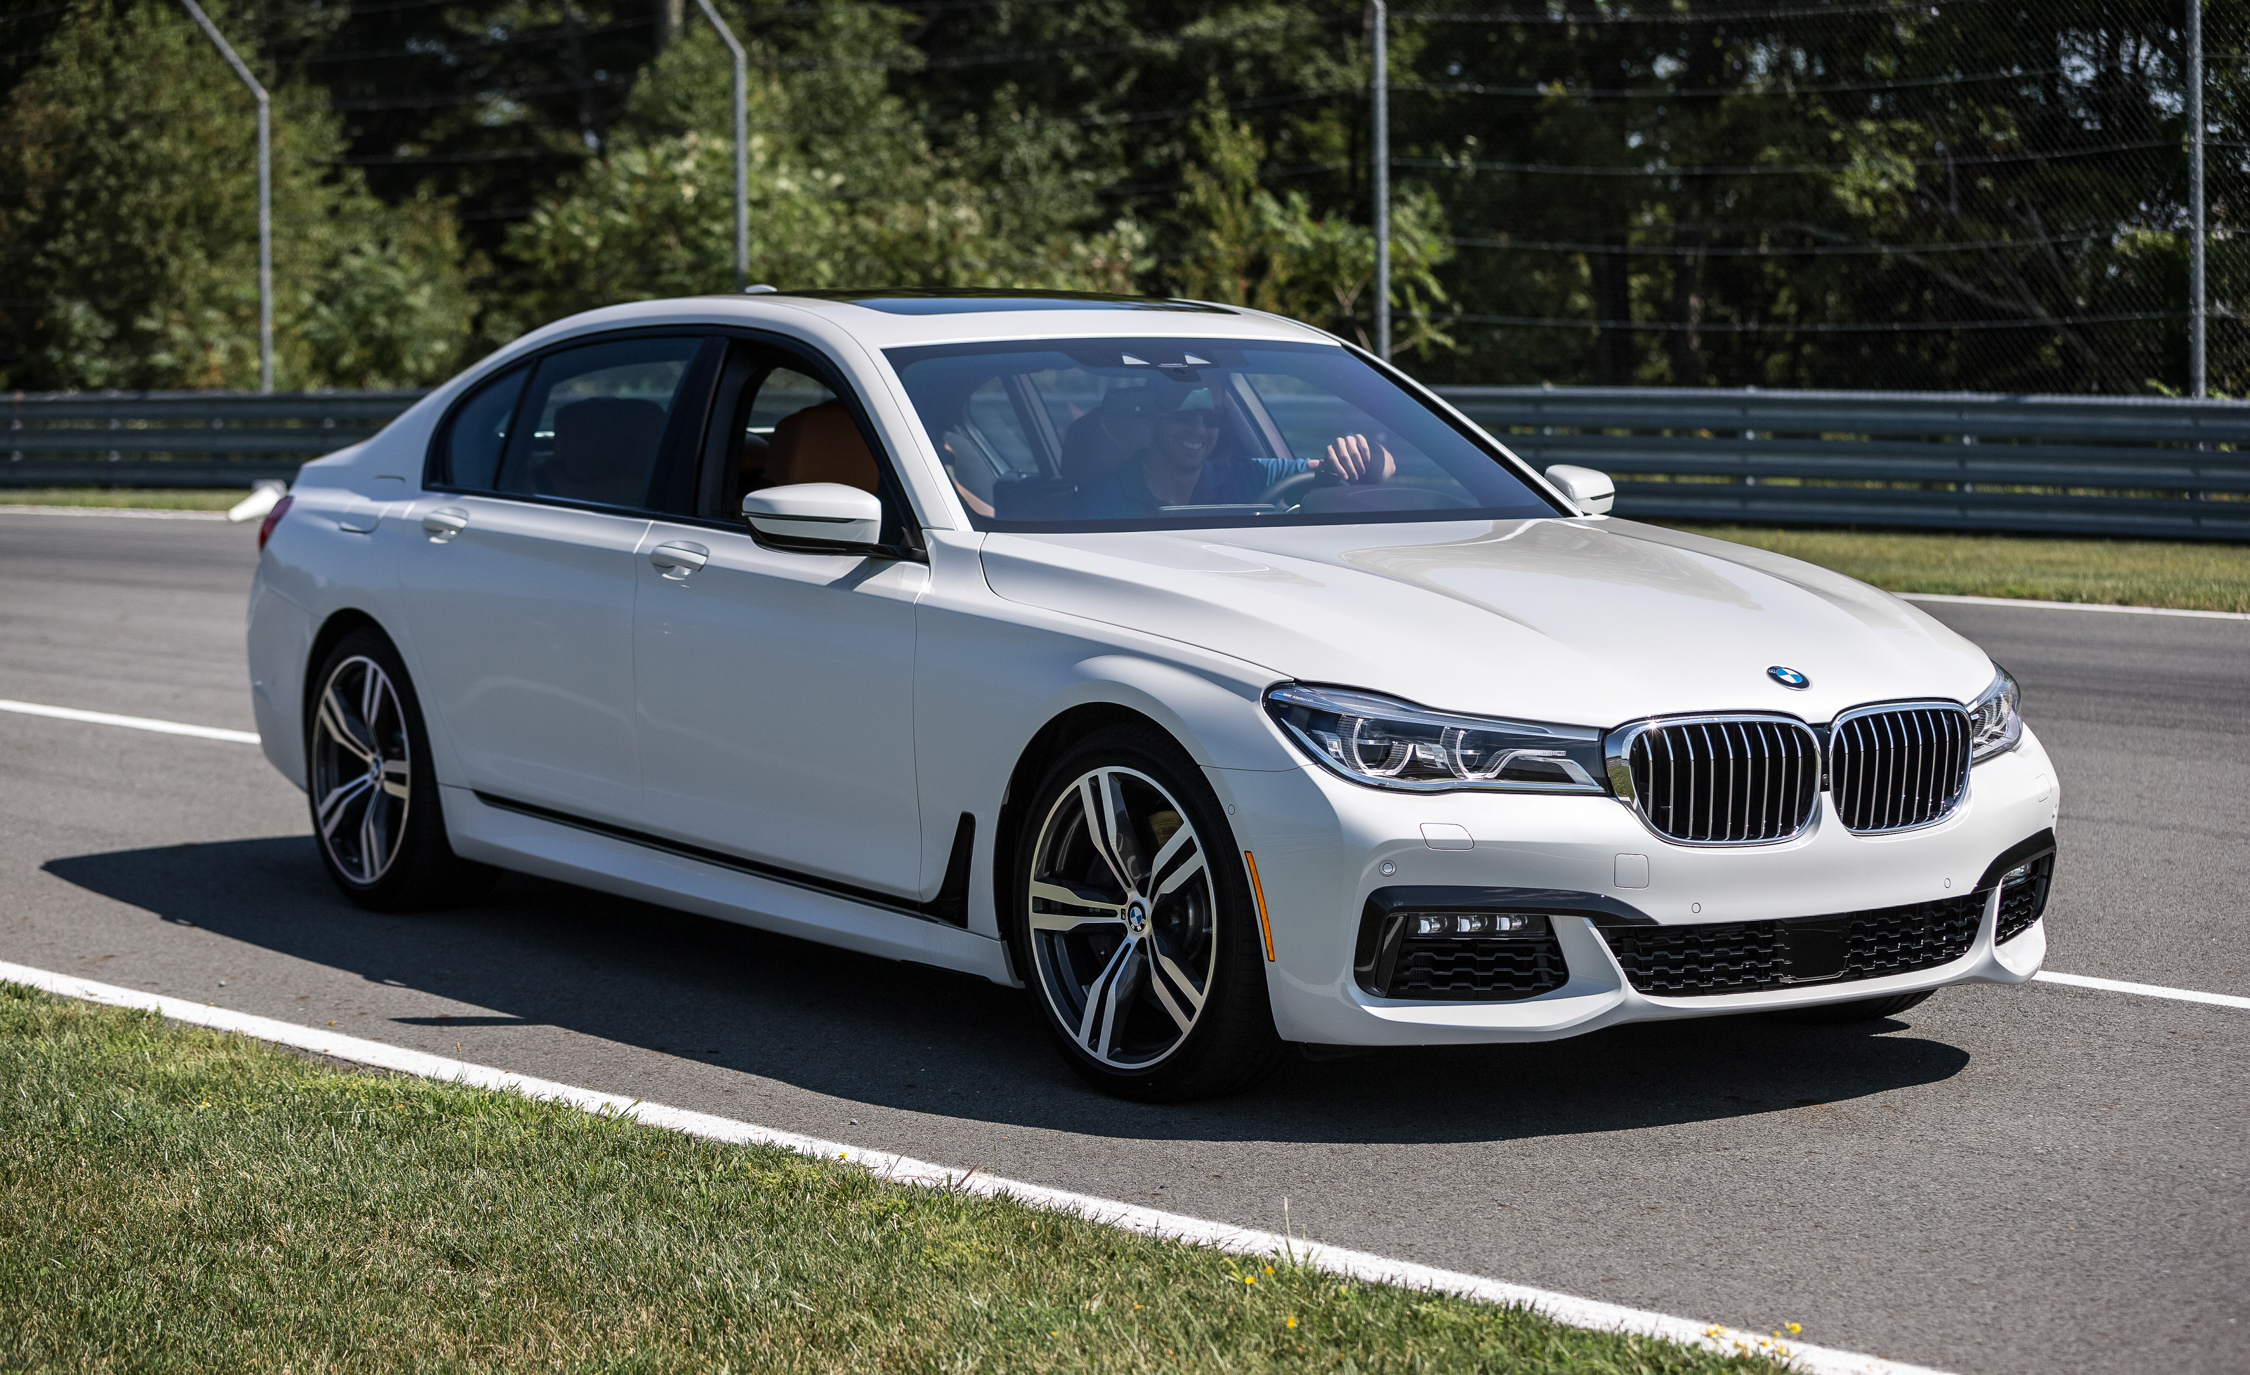 2016 BMW 750i xDrive Pictures Gallery (29 Images)